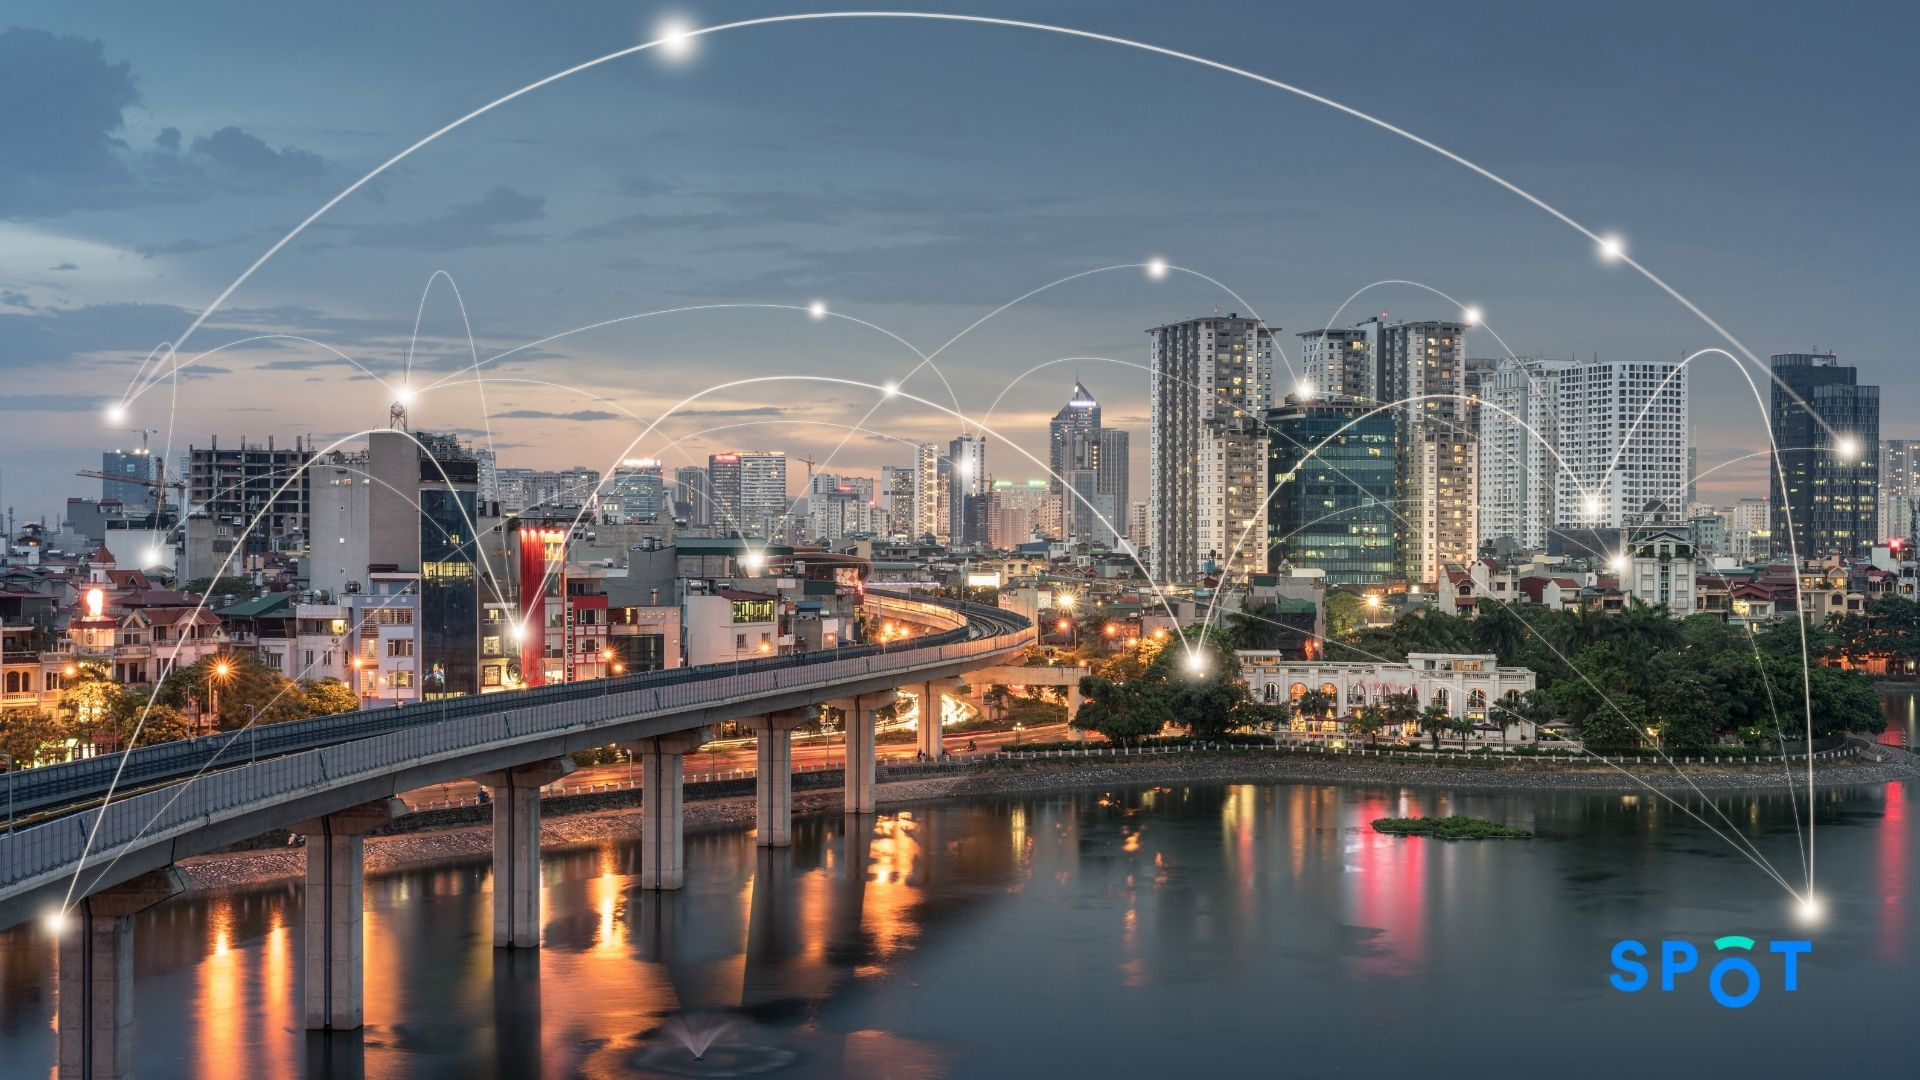 Smart city models can be achieved through curbside optimization